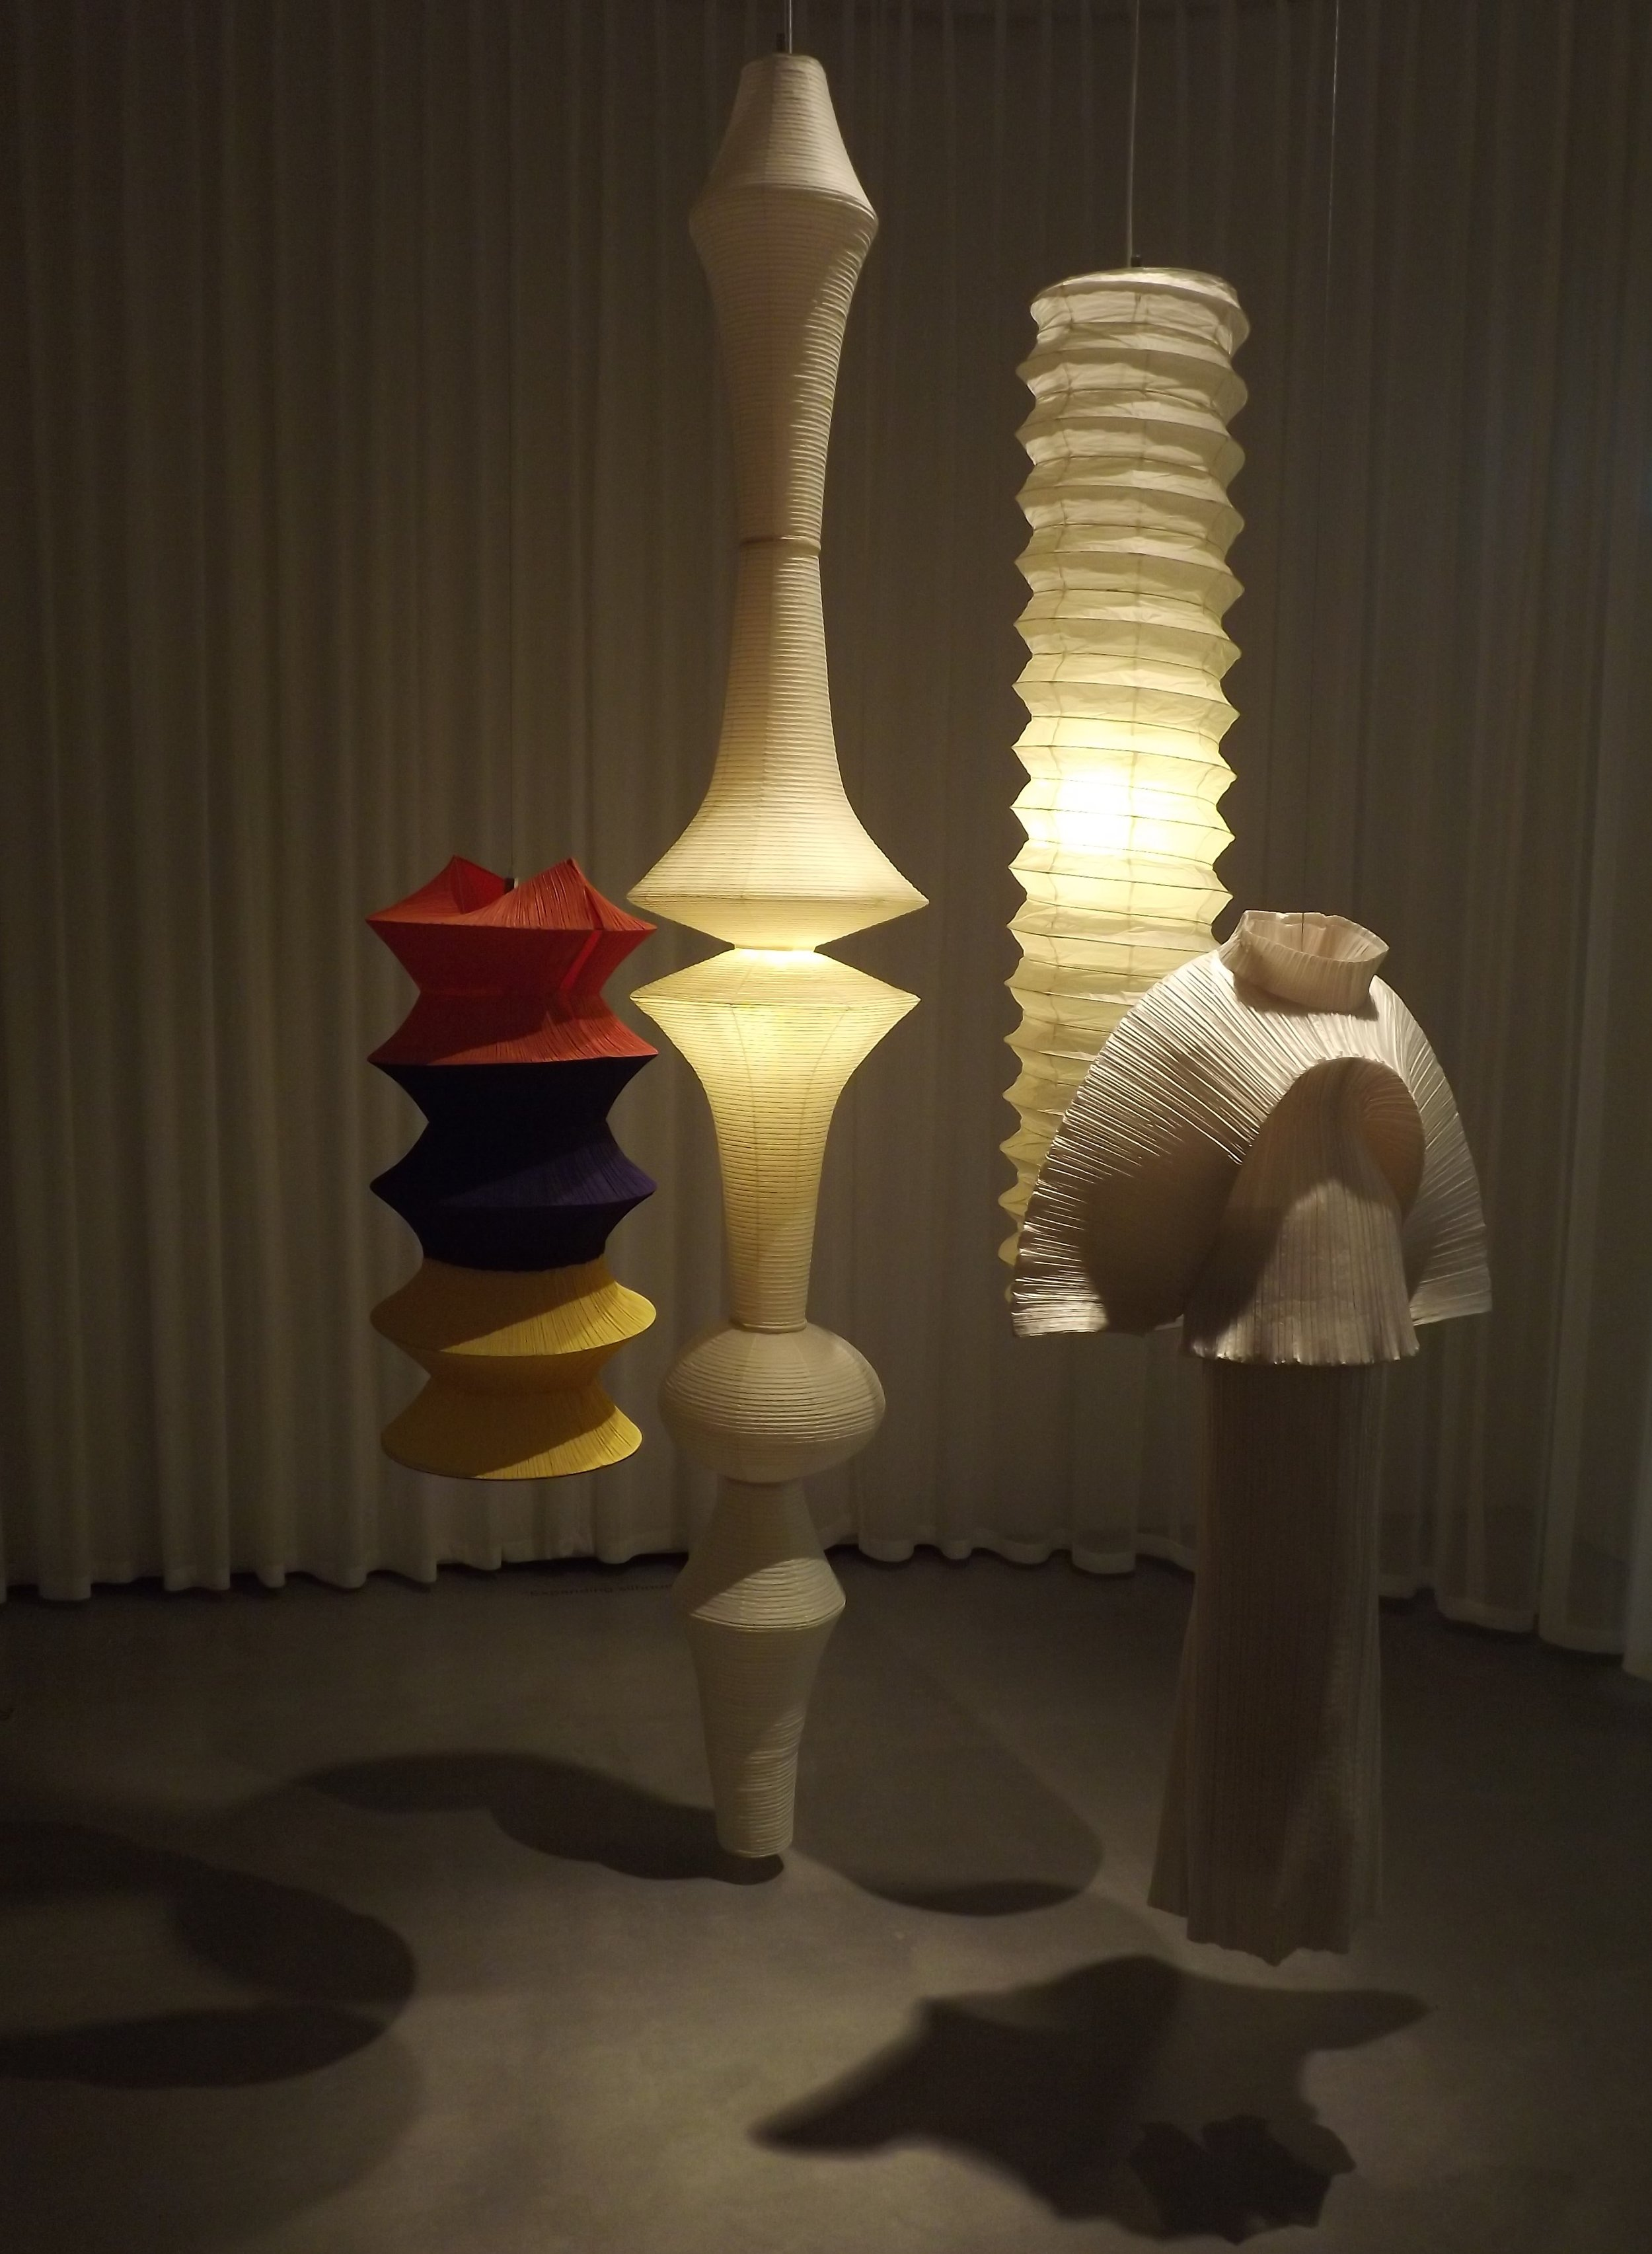 Archive pieces from Issey Miyake's ' Pleat Please ' and ' Bamboo ' collection.